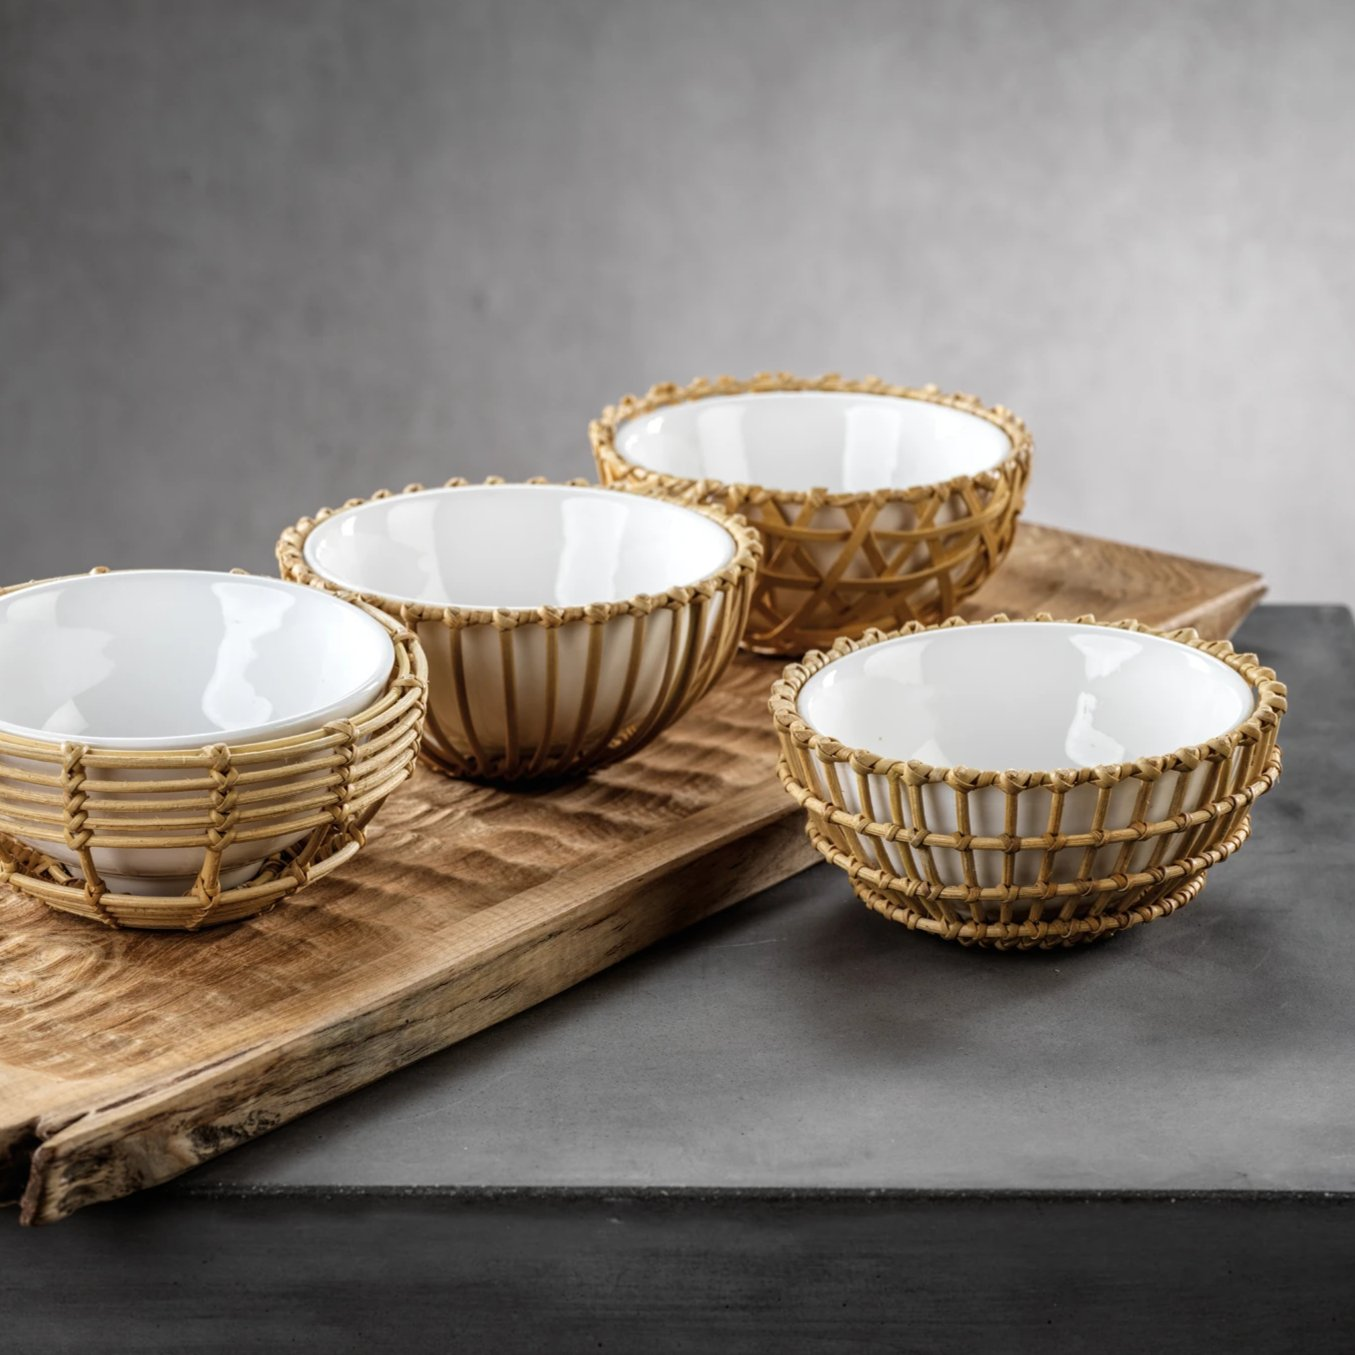 Wicker & Bamboo Condiment Bowls s/4 Assorted - CARLYLE AVENUE